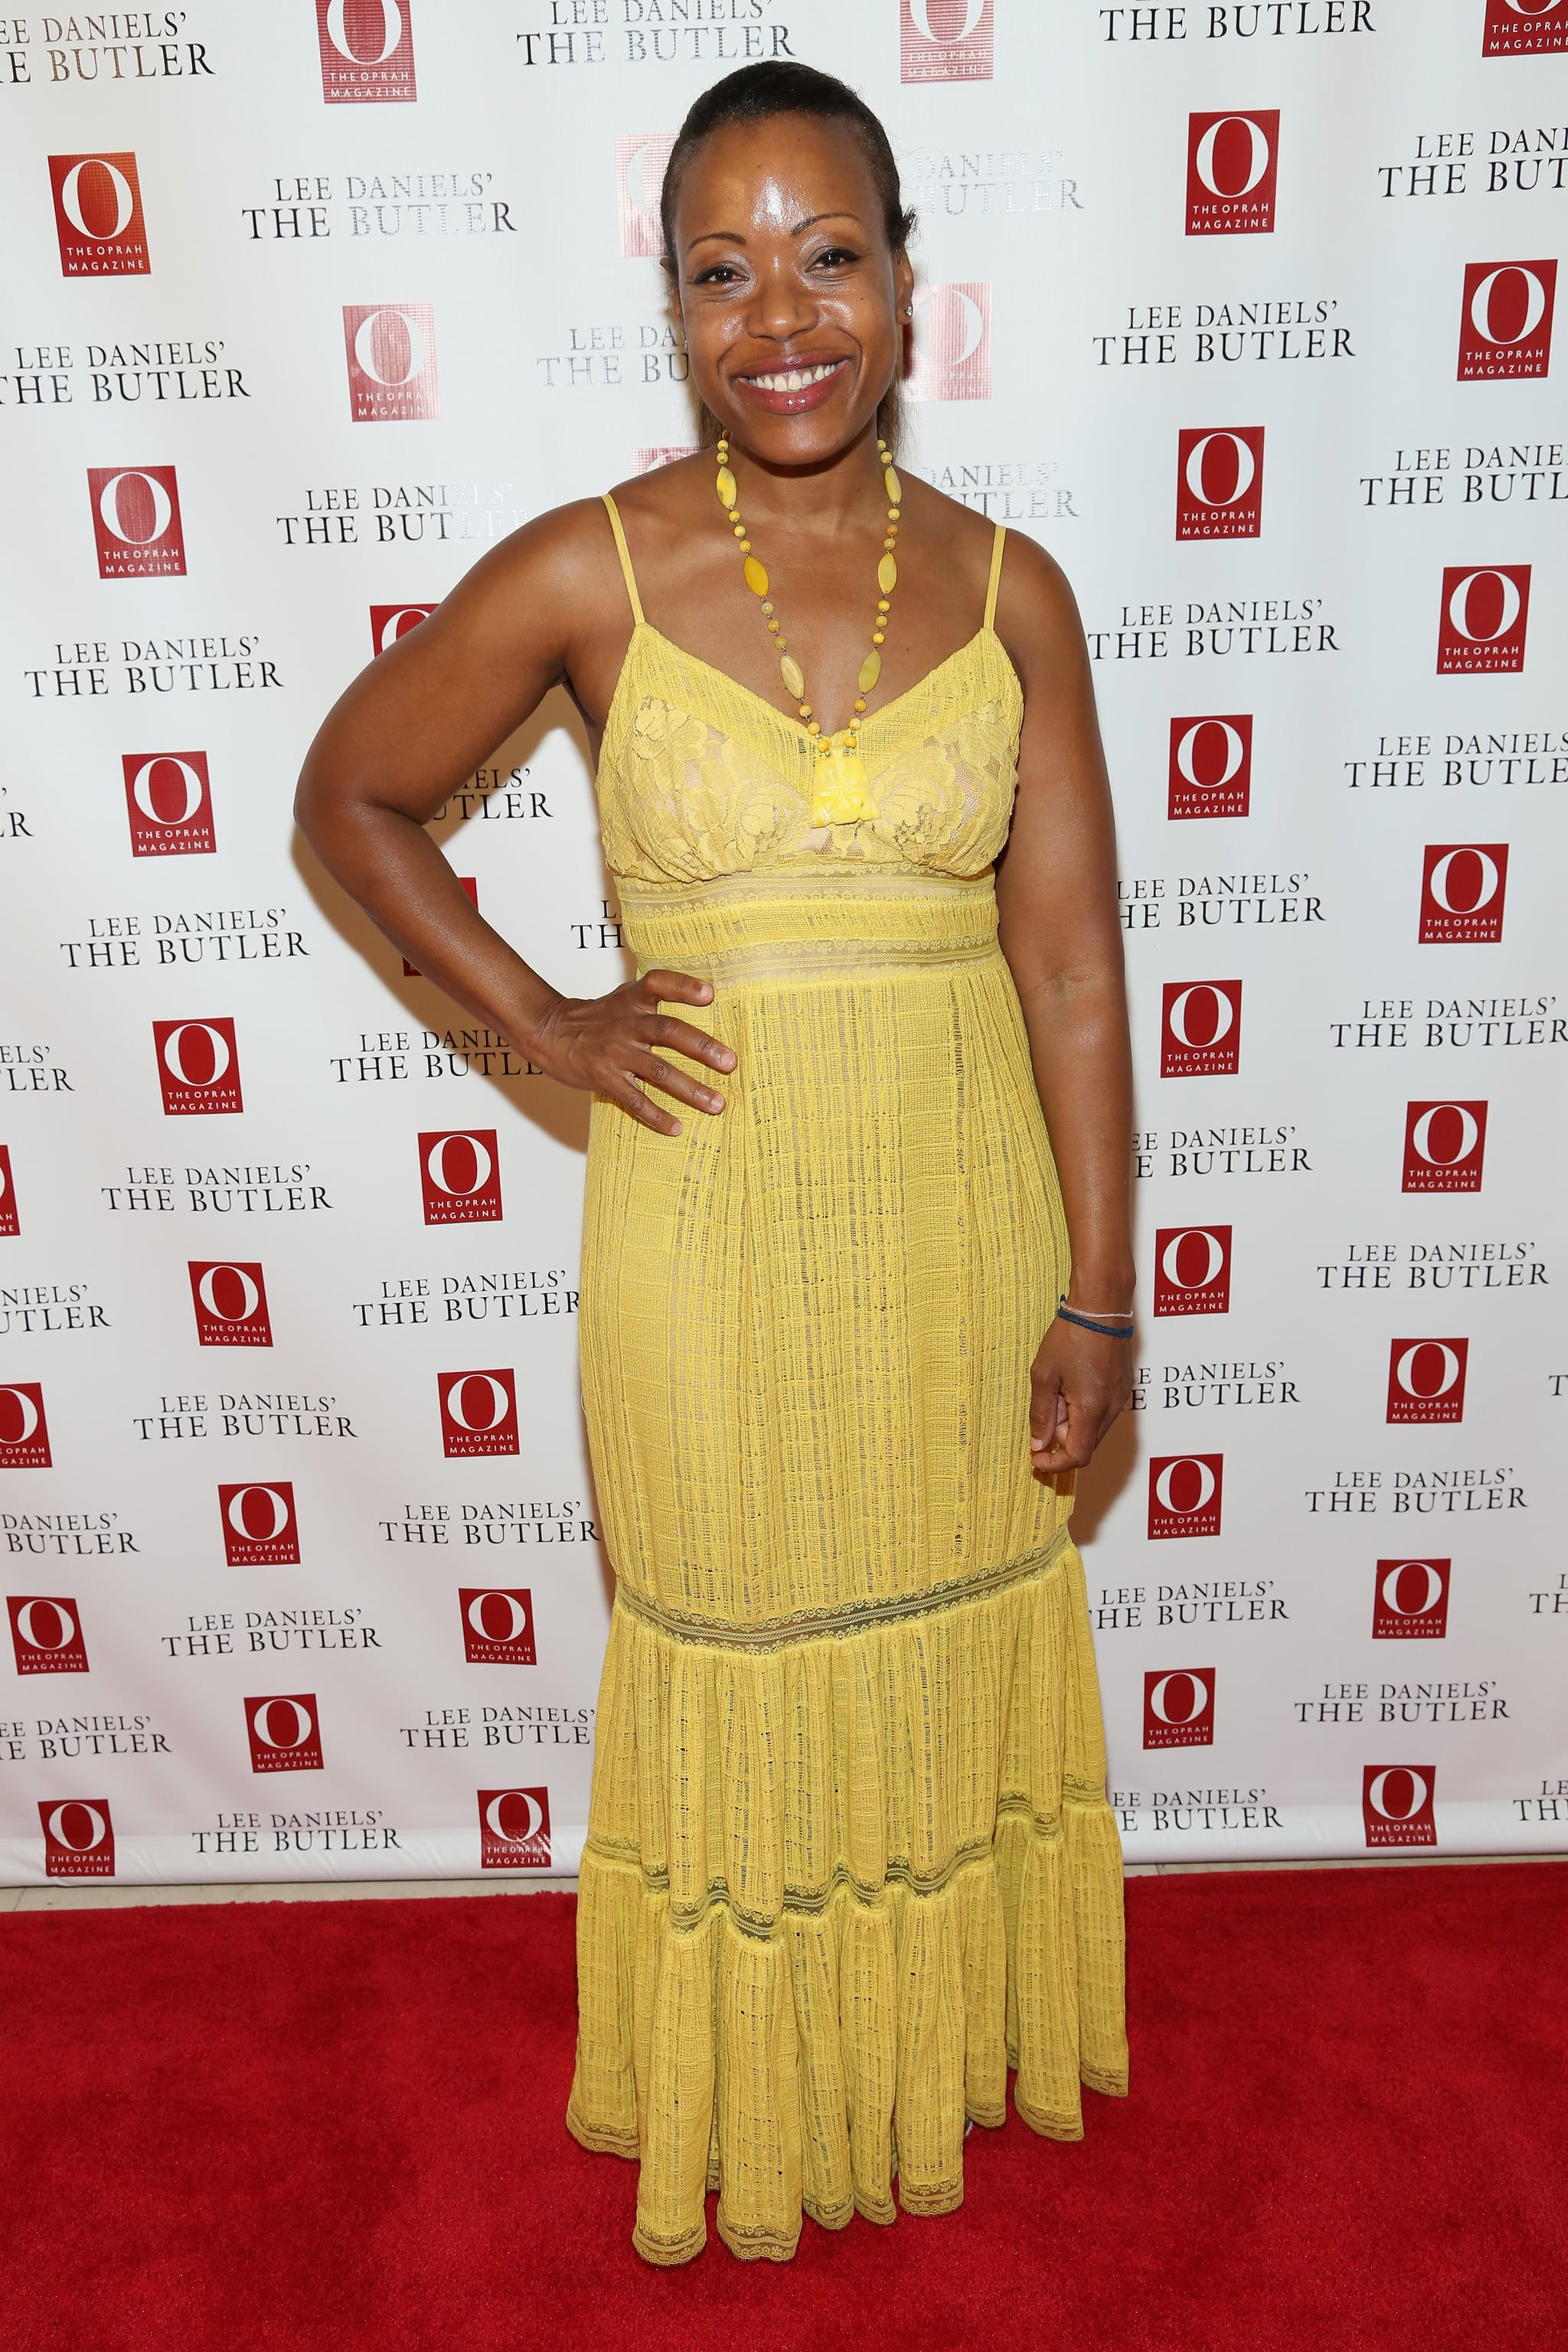 Tracy Reese screened The Butler in coordinating yellow designs.